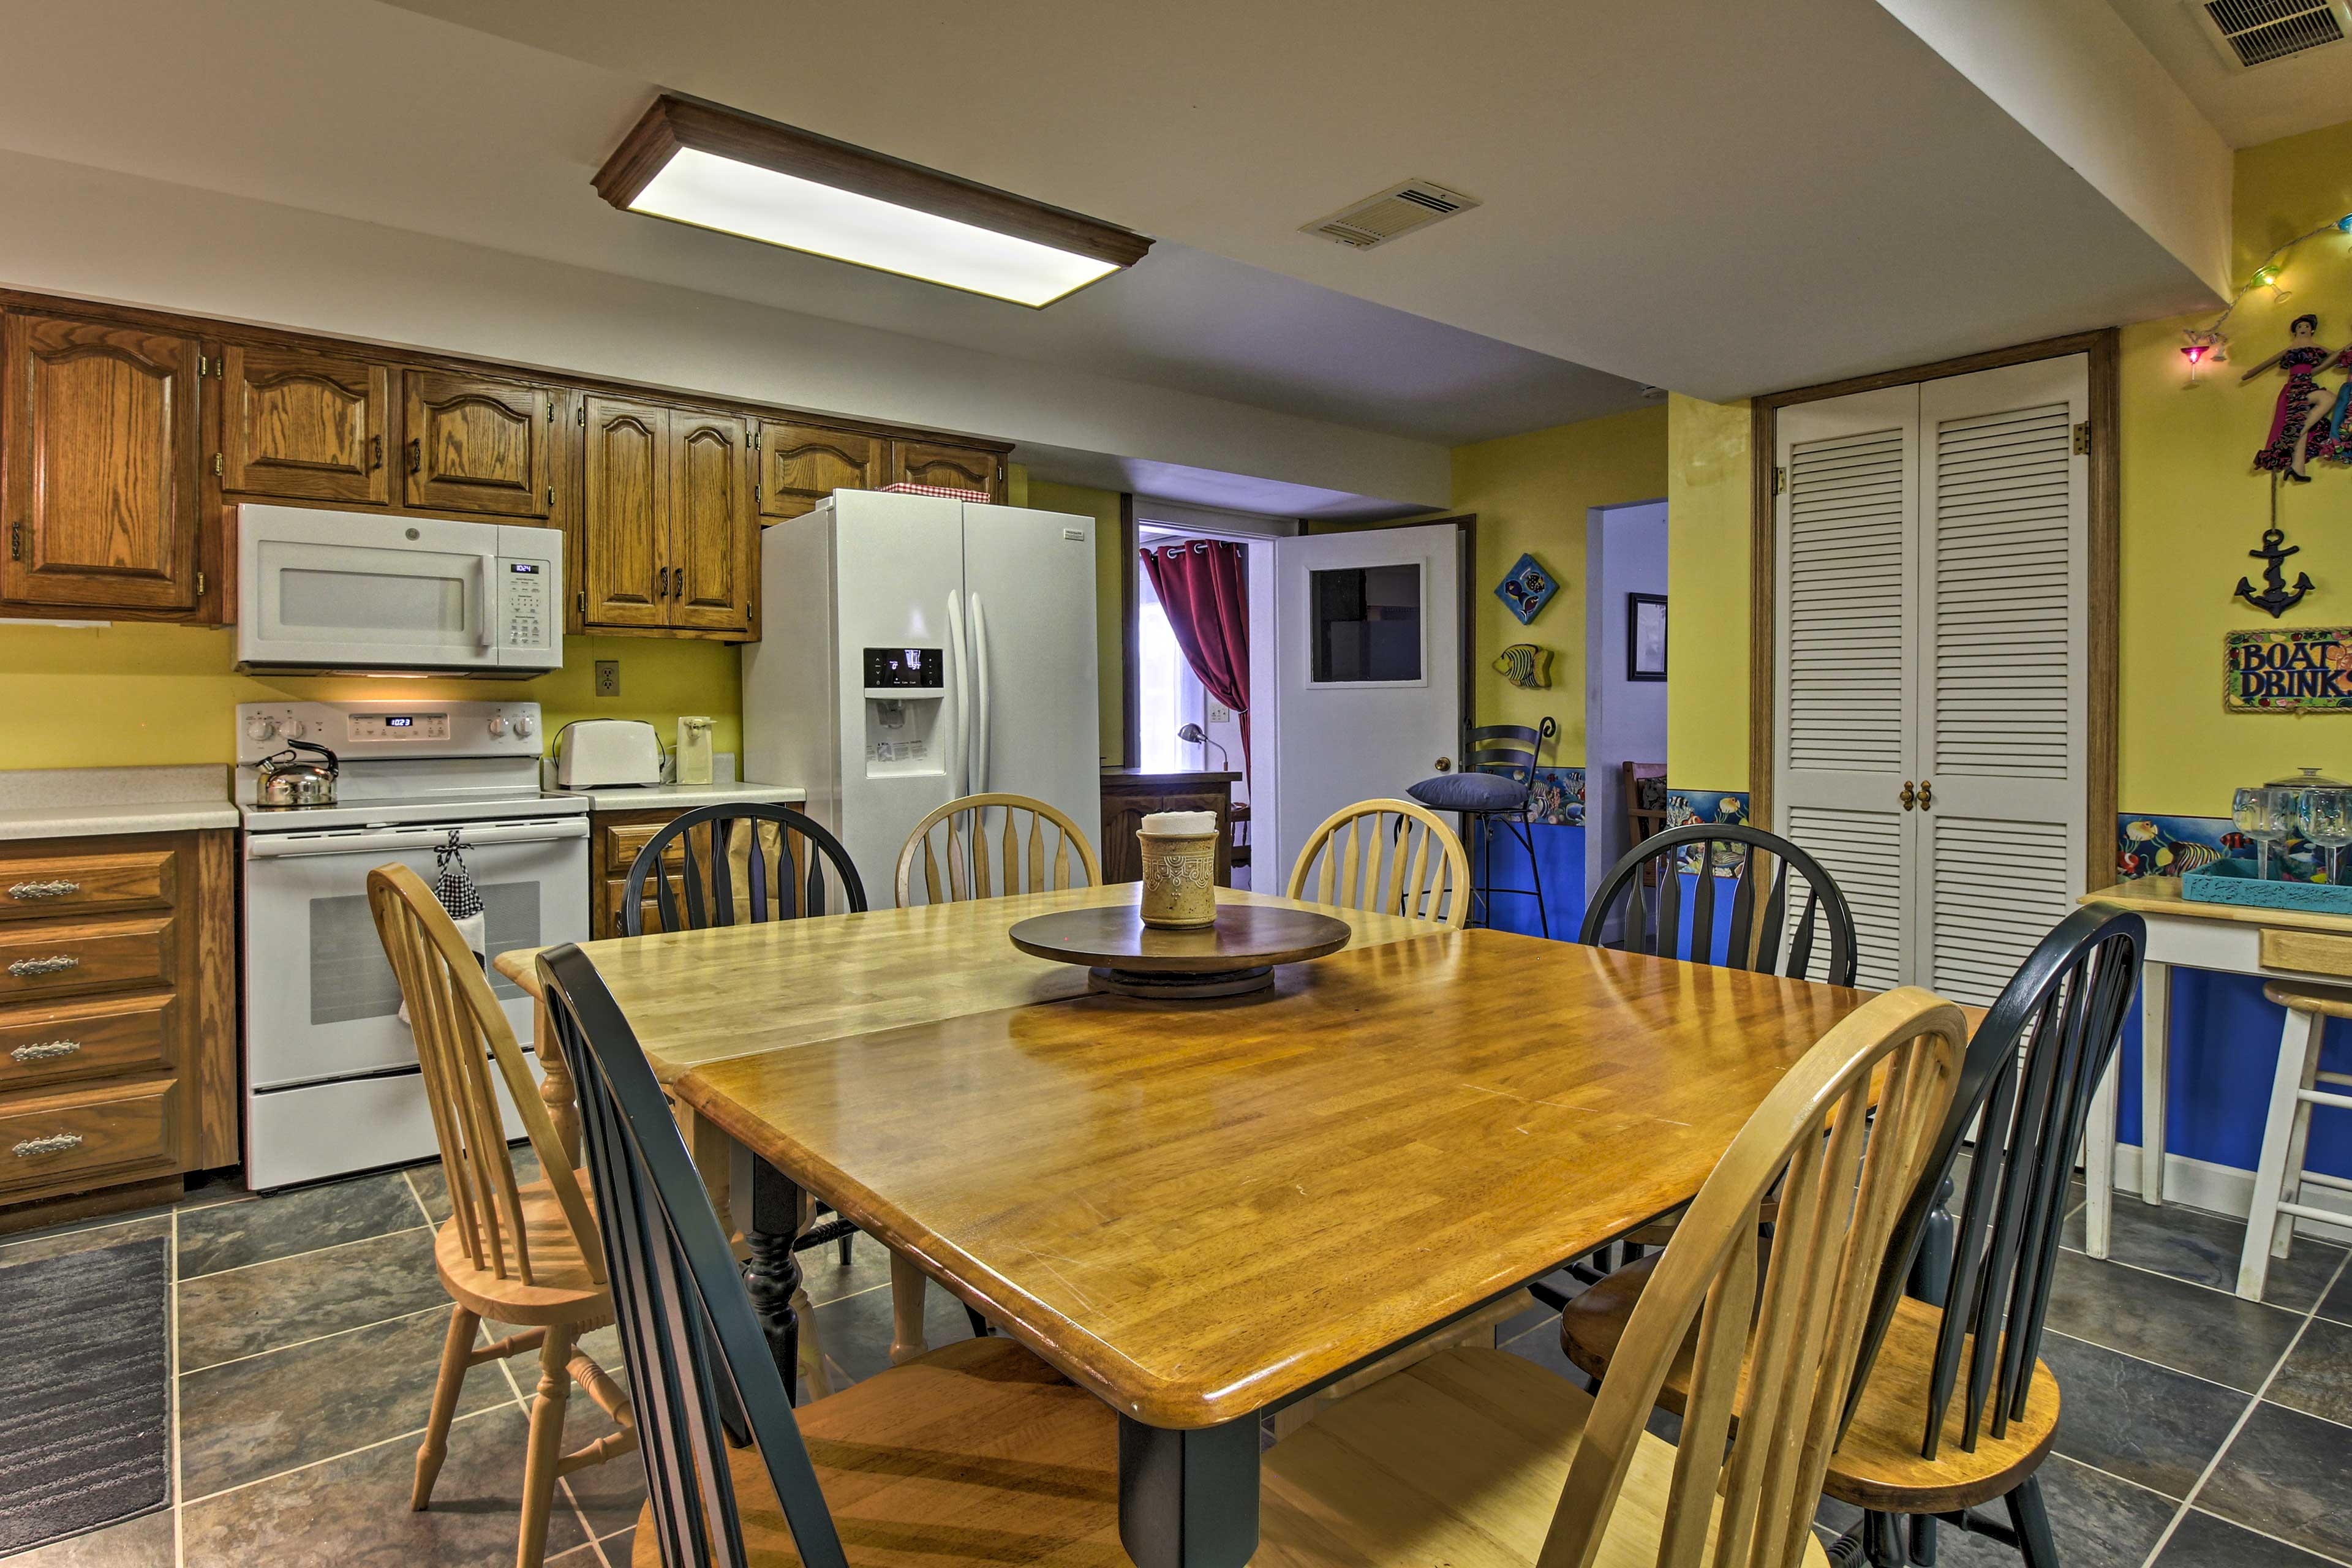 The kitchen is fully equipped for your convenience.